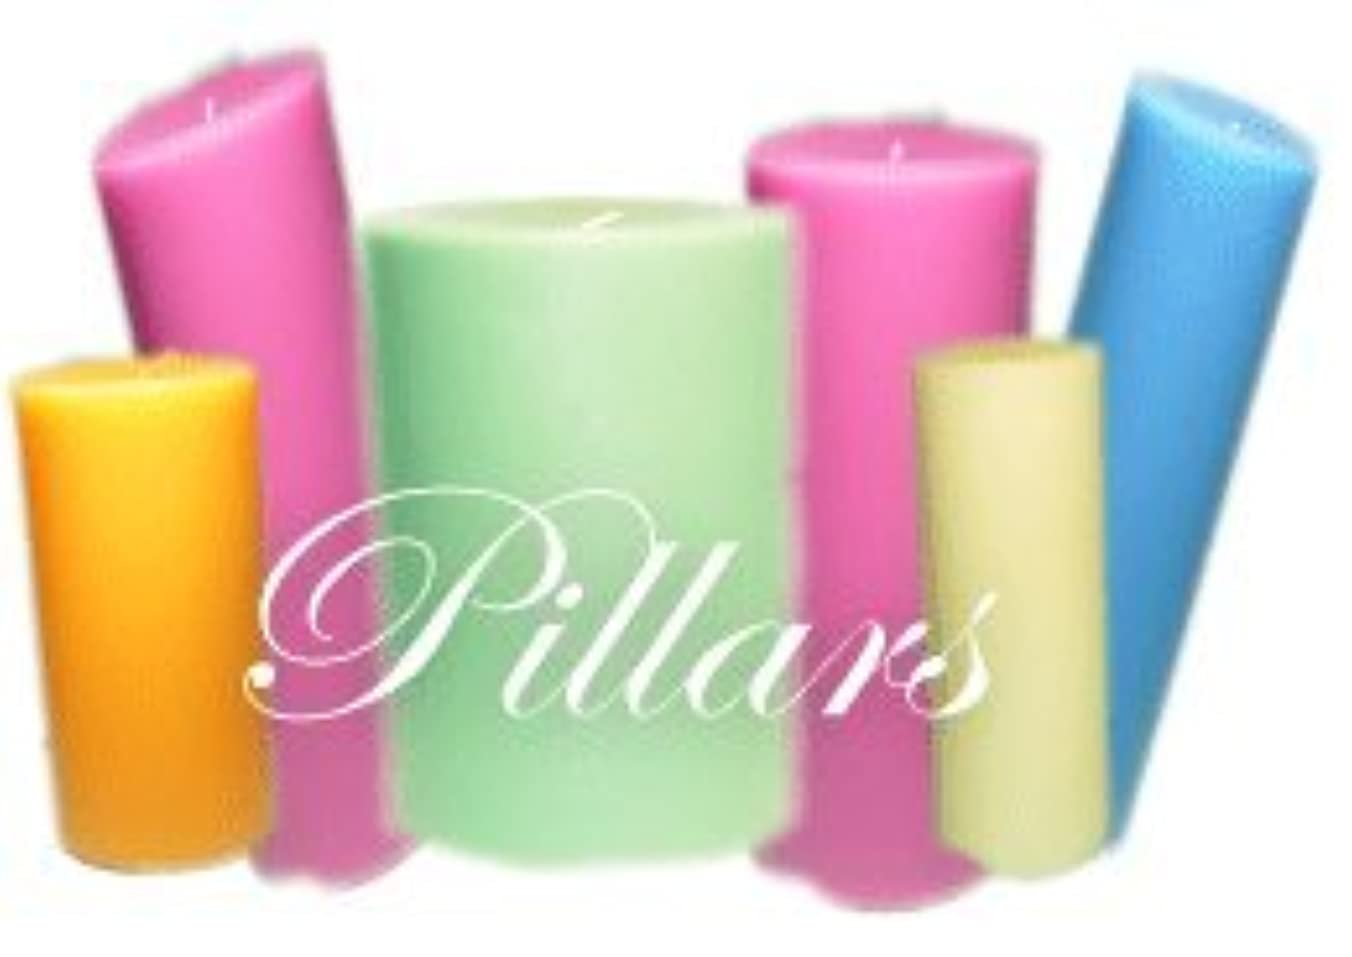 吐く取り替えるスポーツマンTrinity Candle工場 – Autumn harvest – Pillar Candle – 3 x 3